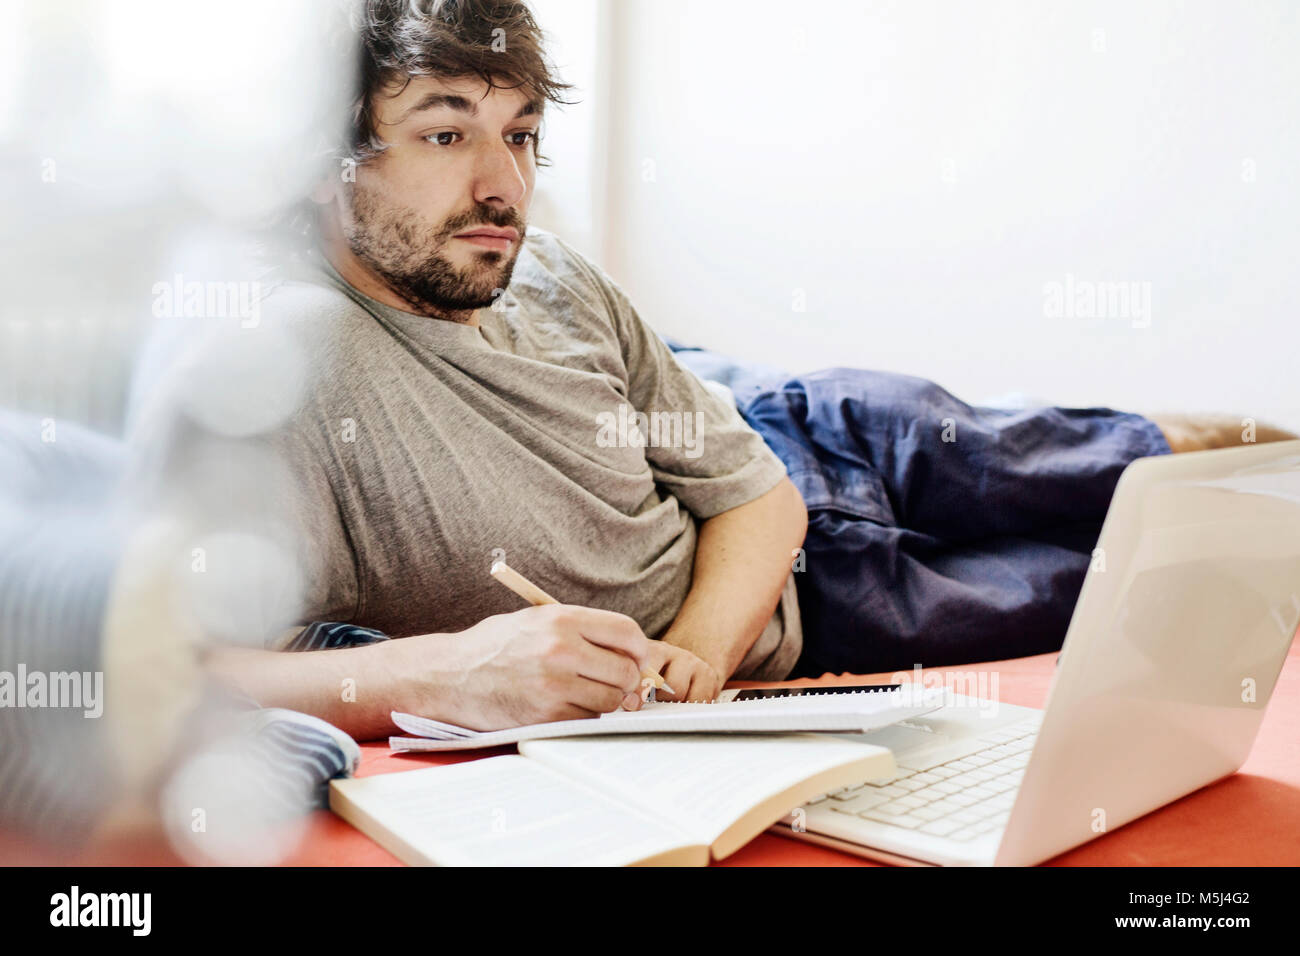 Portrait of student lying on bed with laptop and book learning - Stock Image